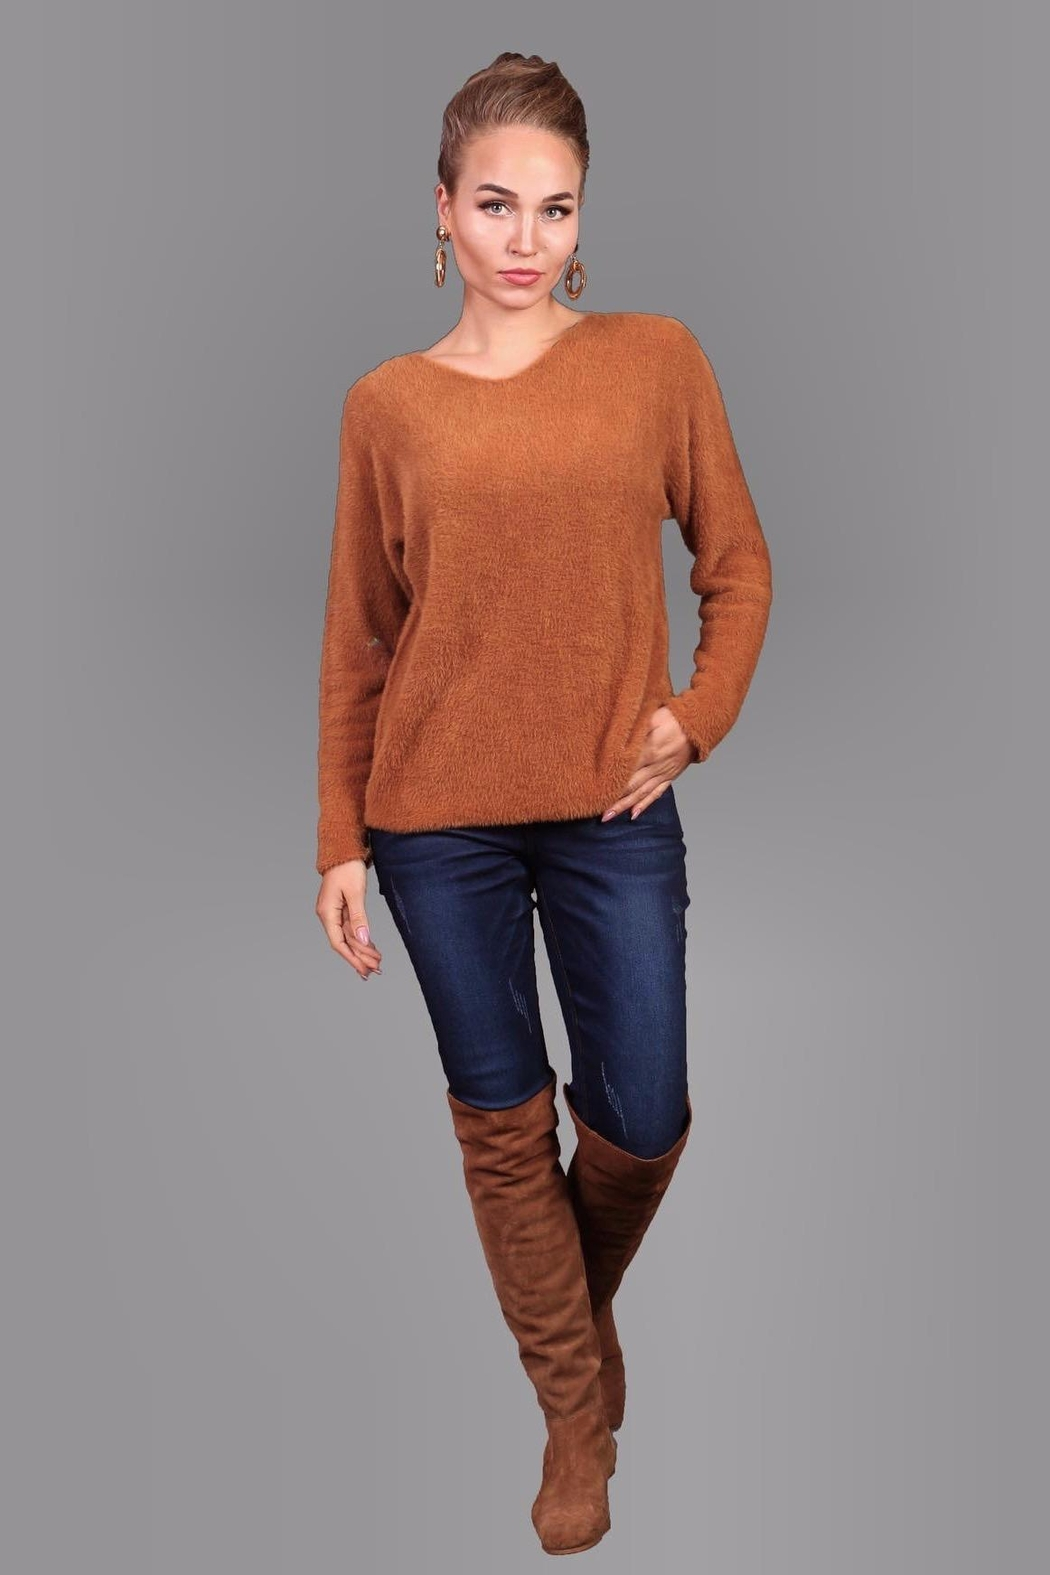 Bella Amore Super-Soft Camel Sweater - Main Image